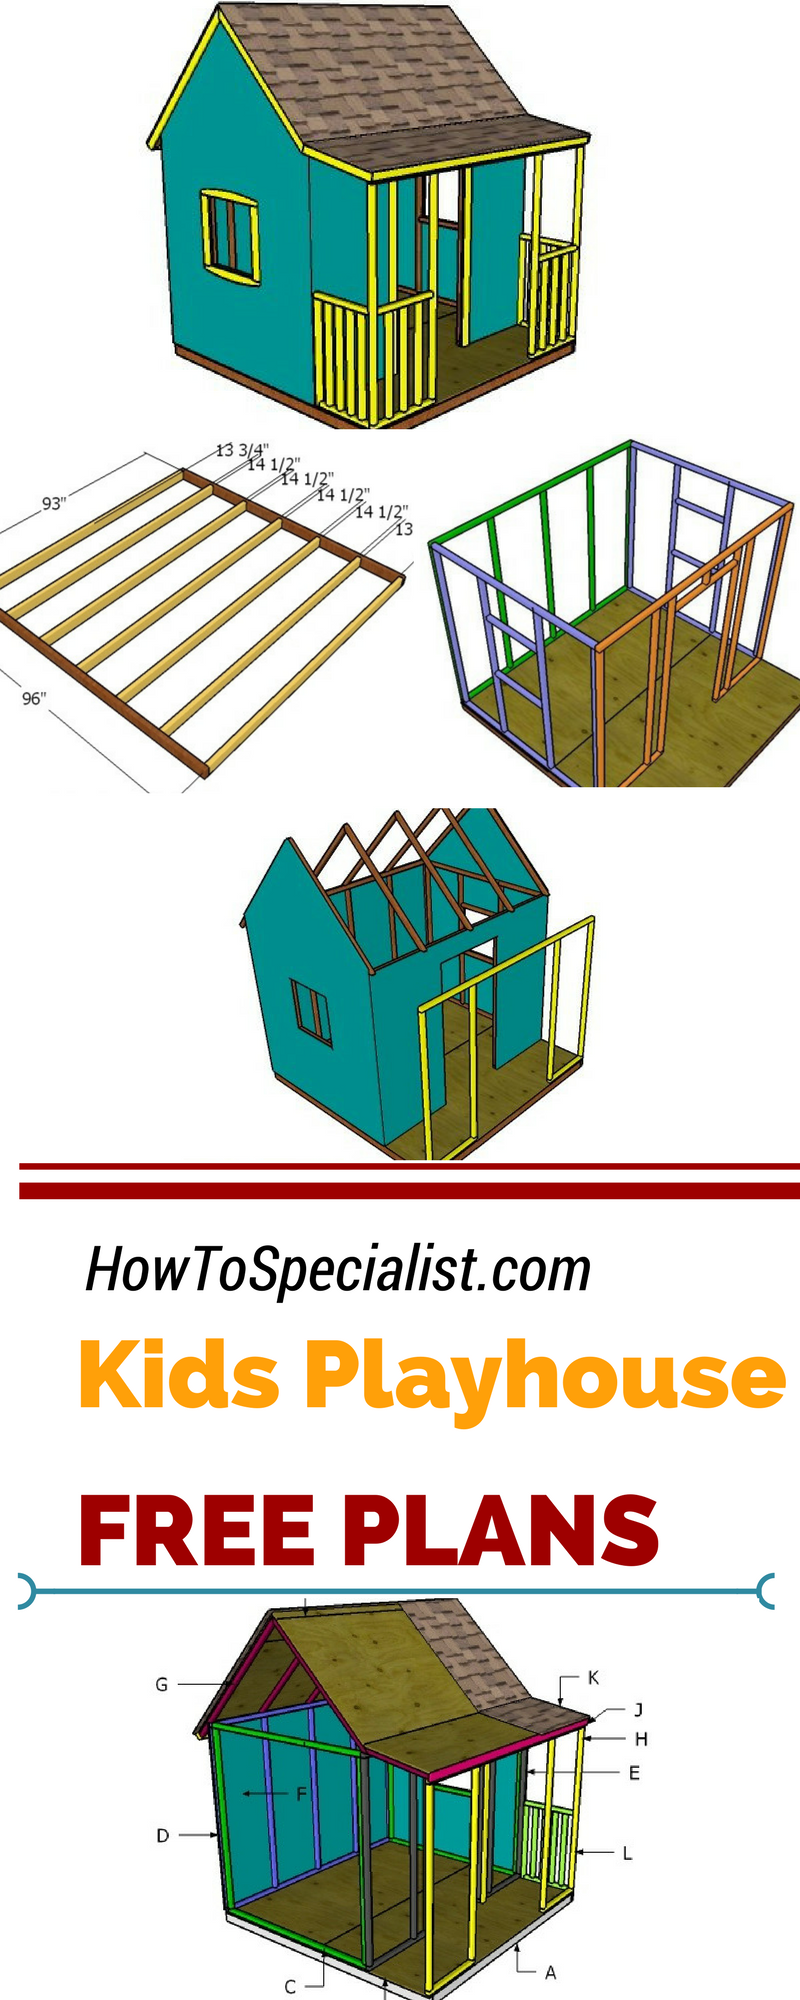 Outdoor Playhouse Plans Howtospecialist How To Build Step By Step Diy Plans Kids Playhouse Plans Childrens Playhouse Kids Playhouse